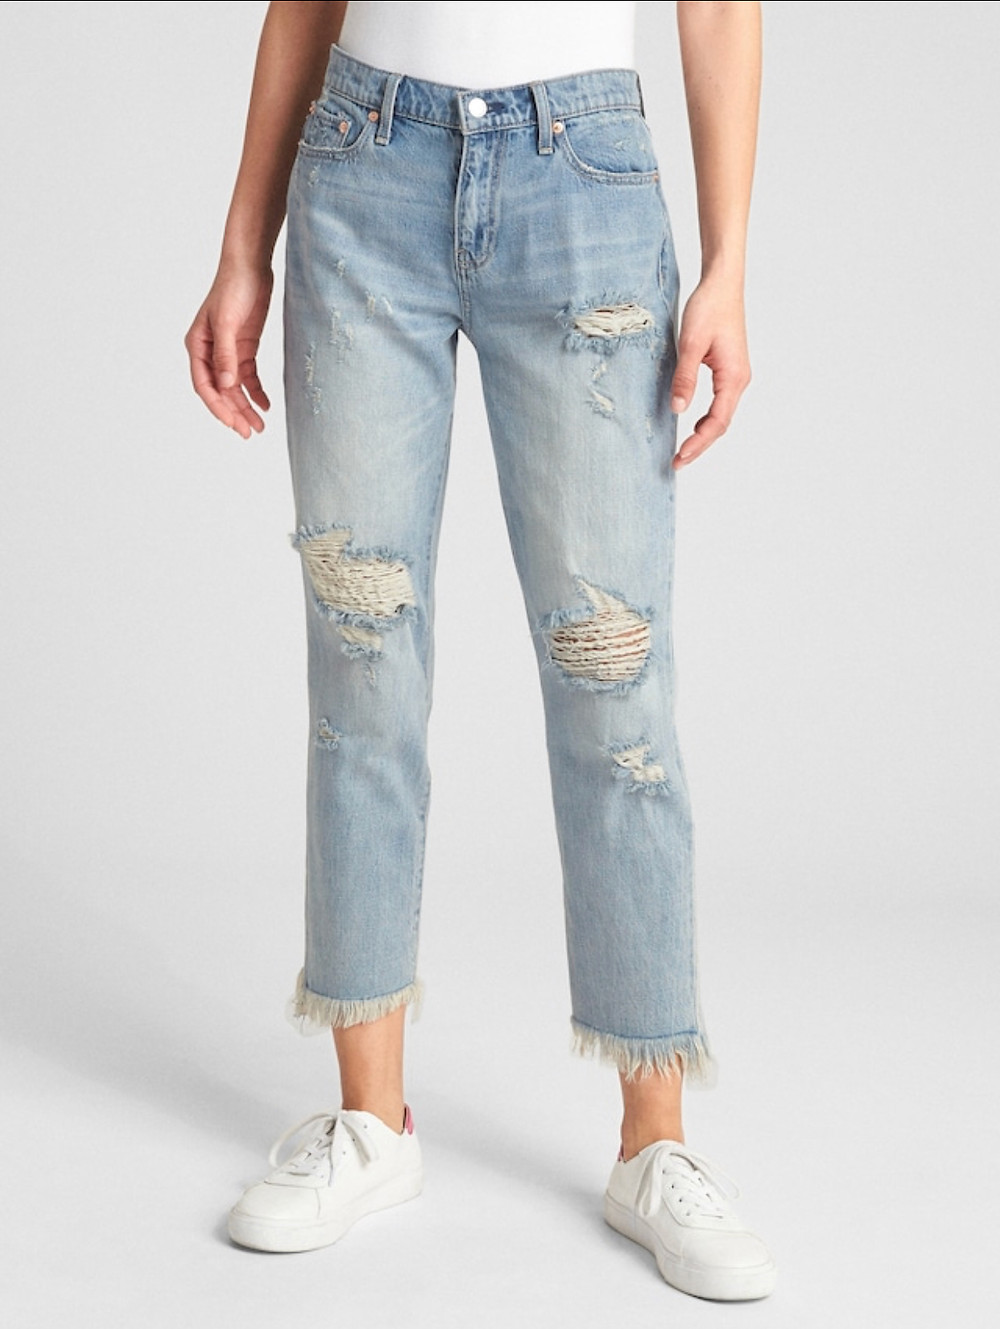 Mid-Rise Best Girlfriend Jeans with Distressed Detail: